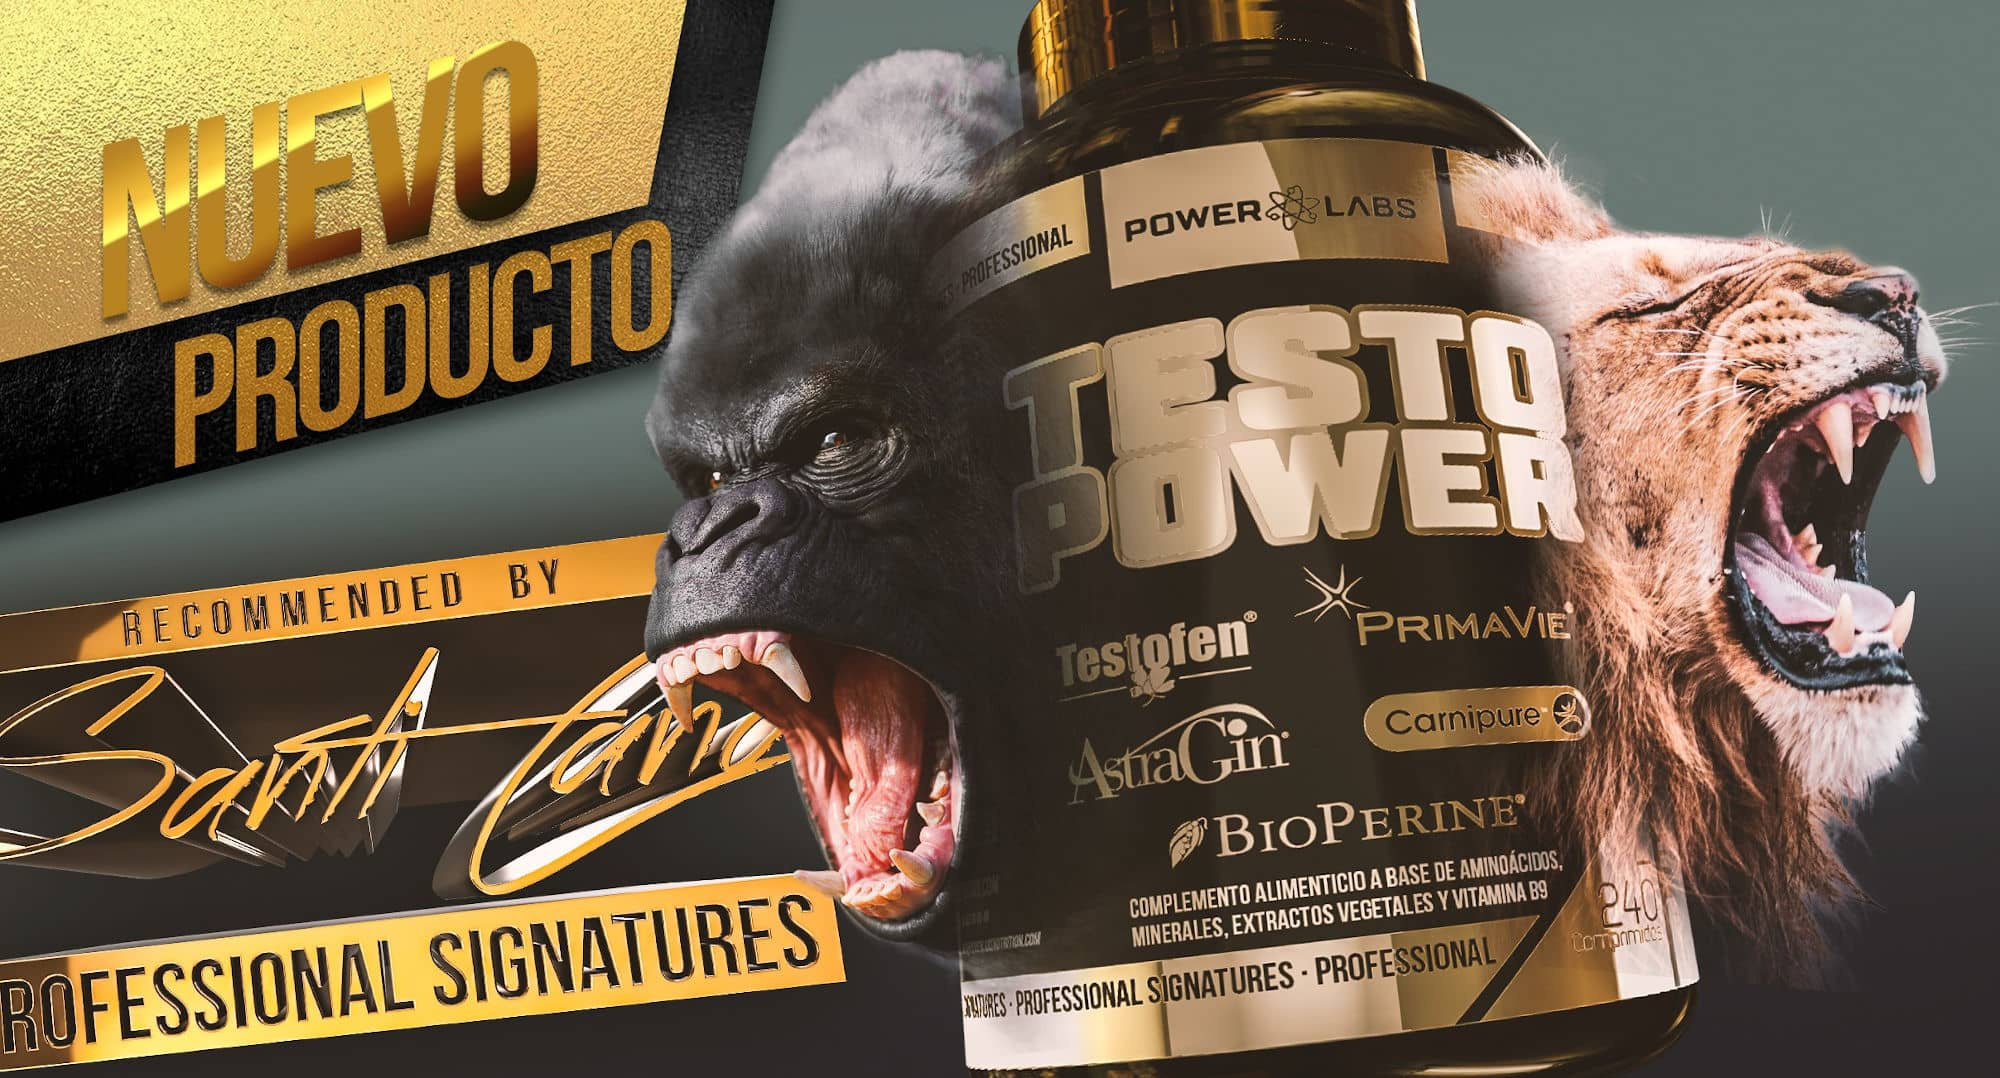 NEW-PRODUCT-TESTO-POWER